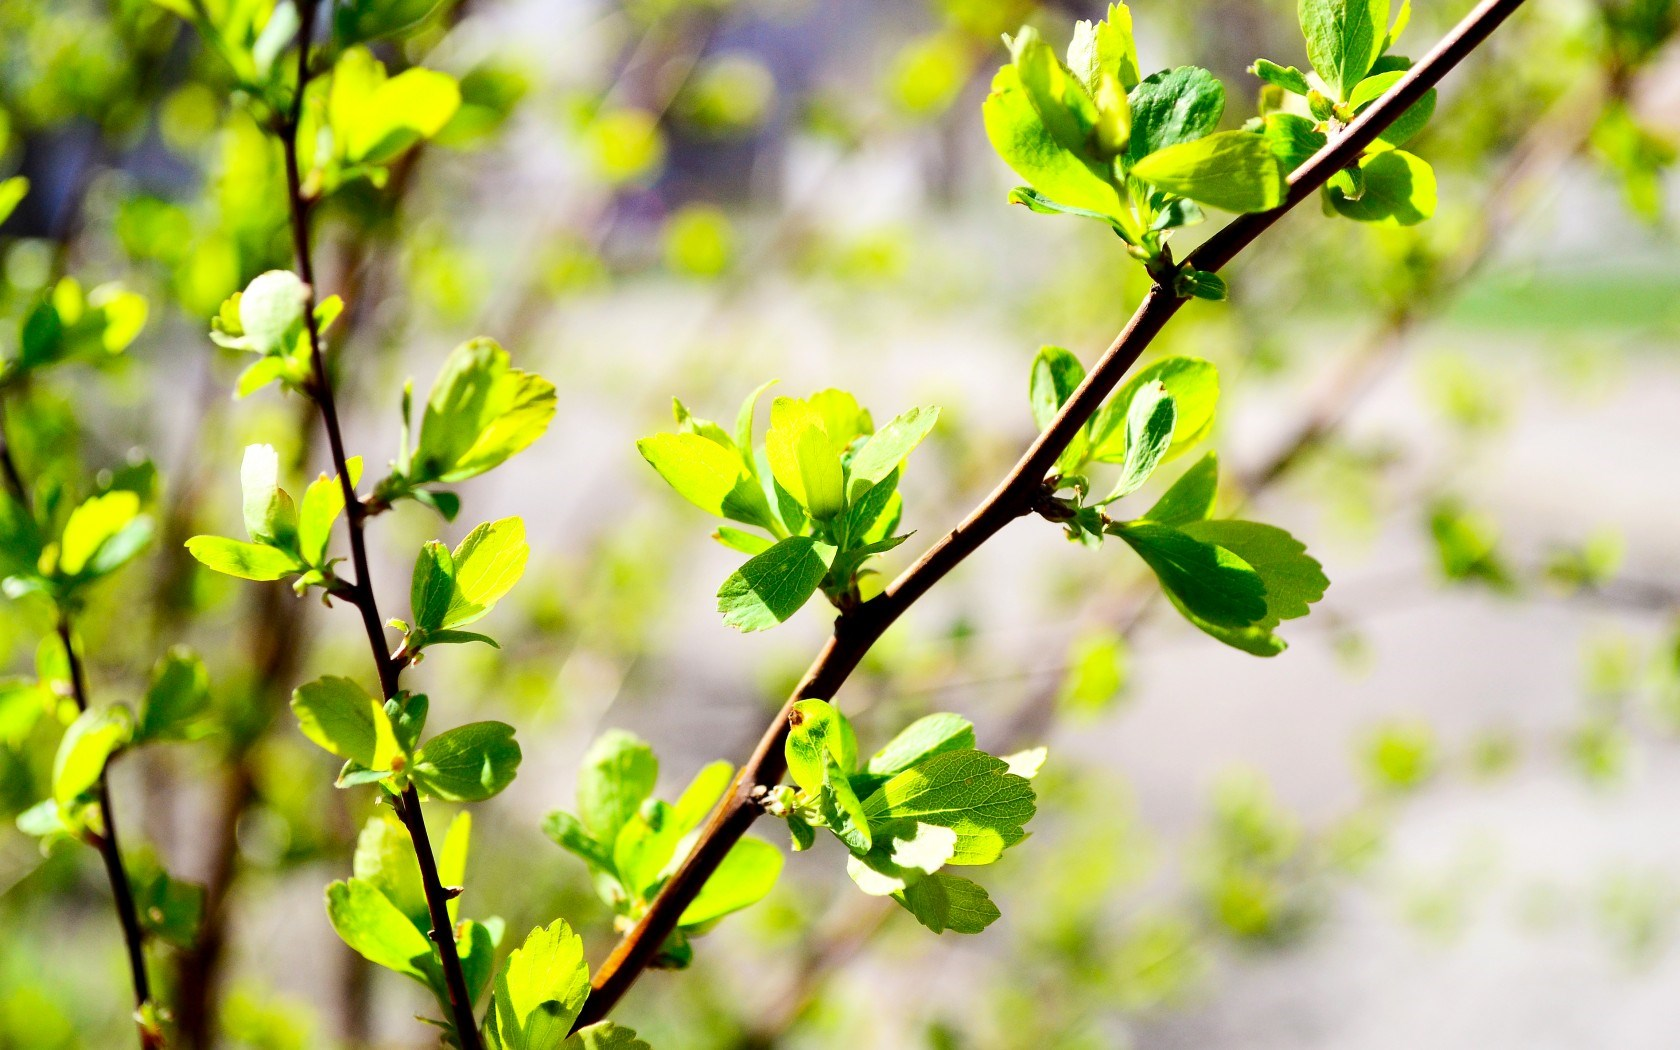 spring green leaves bud photo branch blur background wallpaper 1680x1050